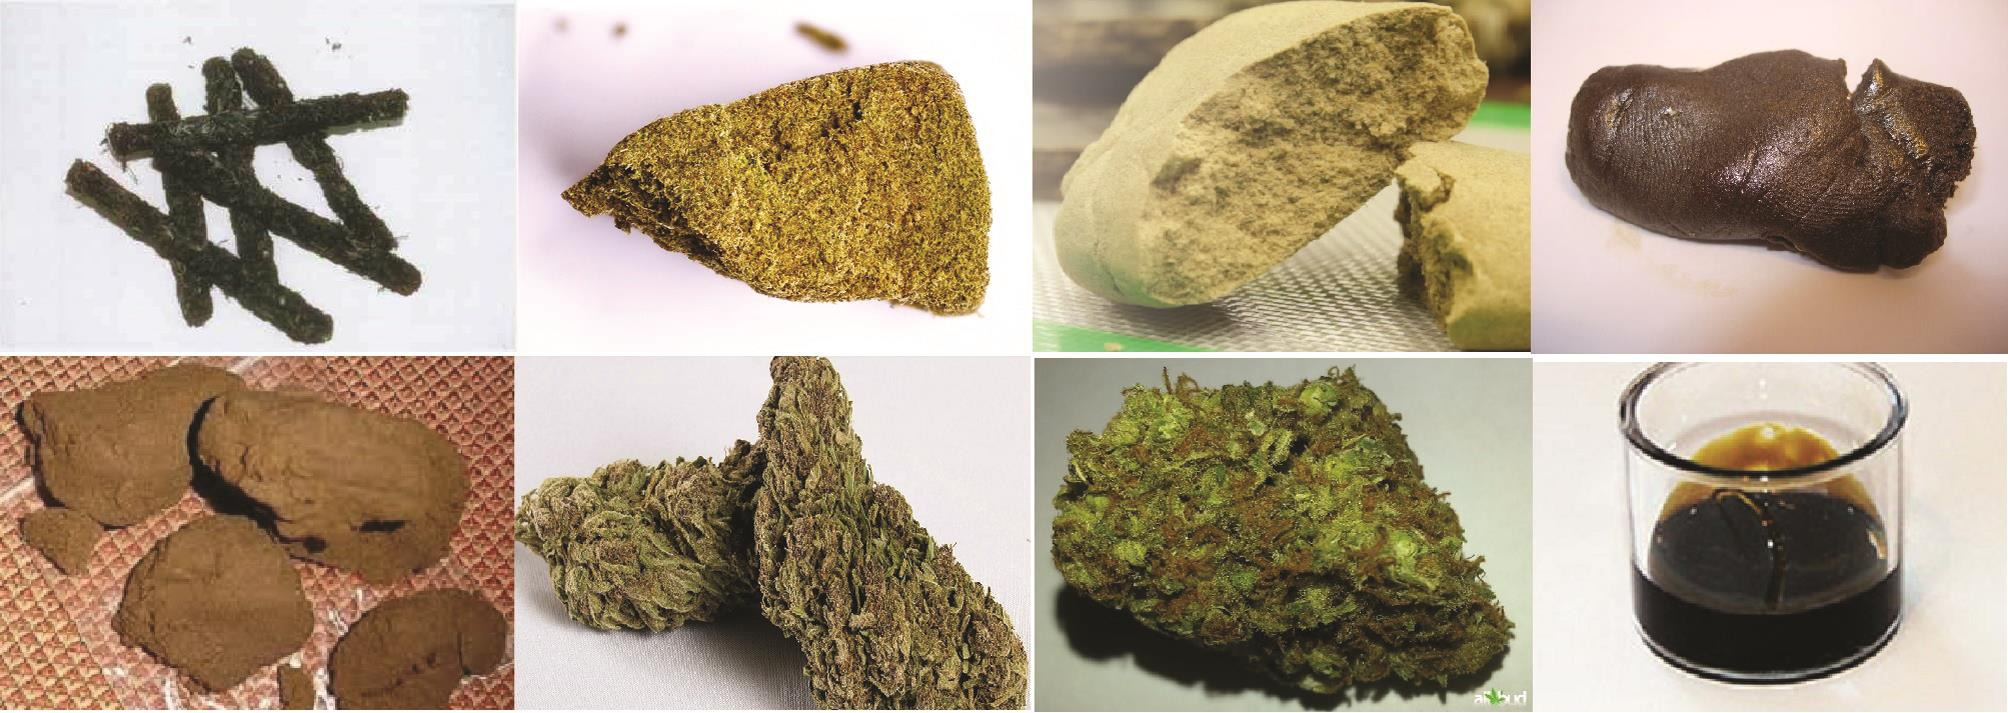 Cannabis products.